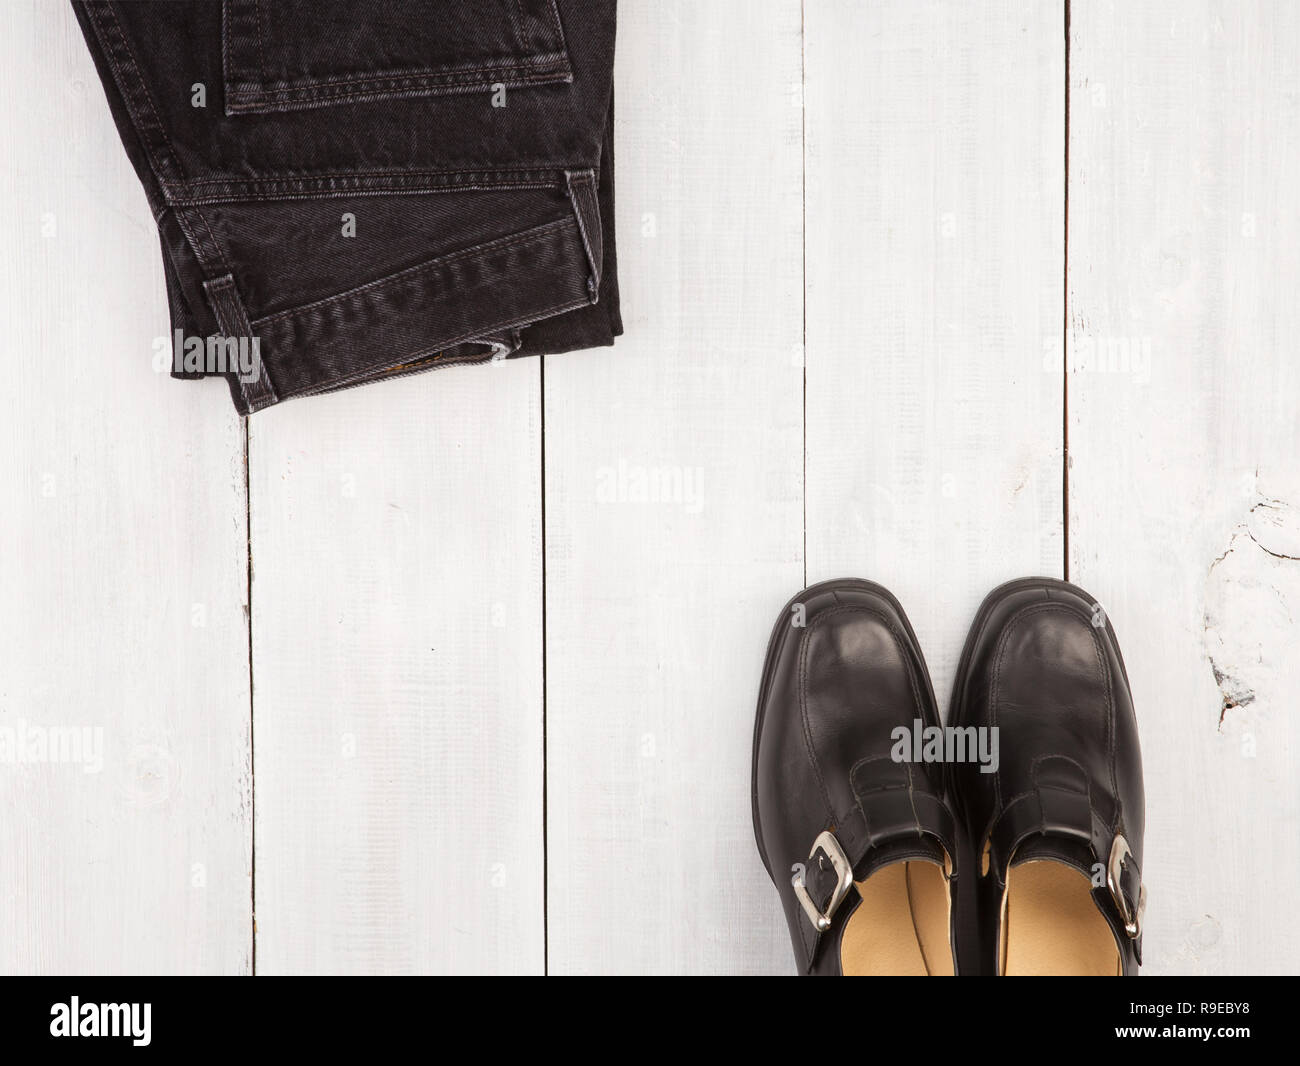 Jeans and black shoes photos & jeans and black shoes images alamy